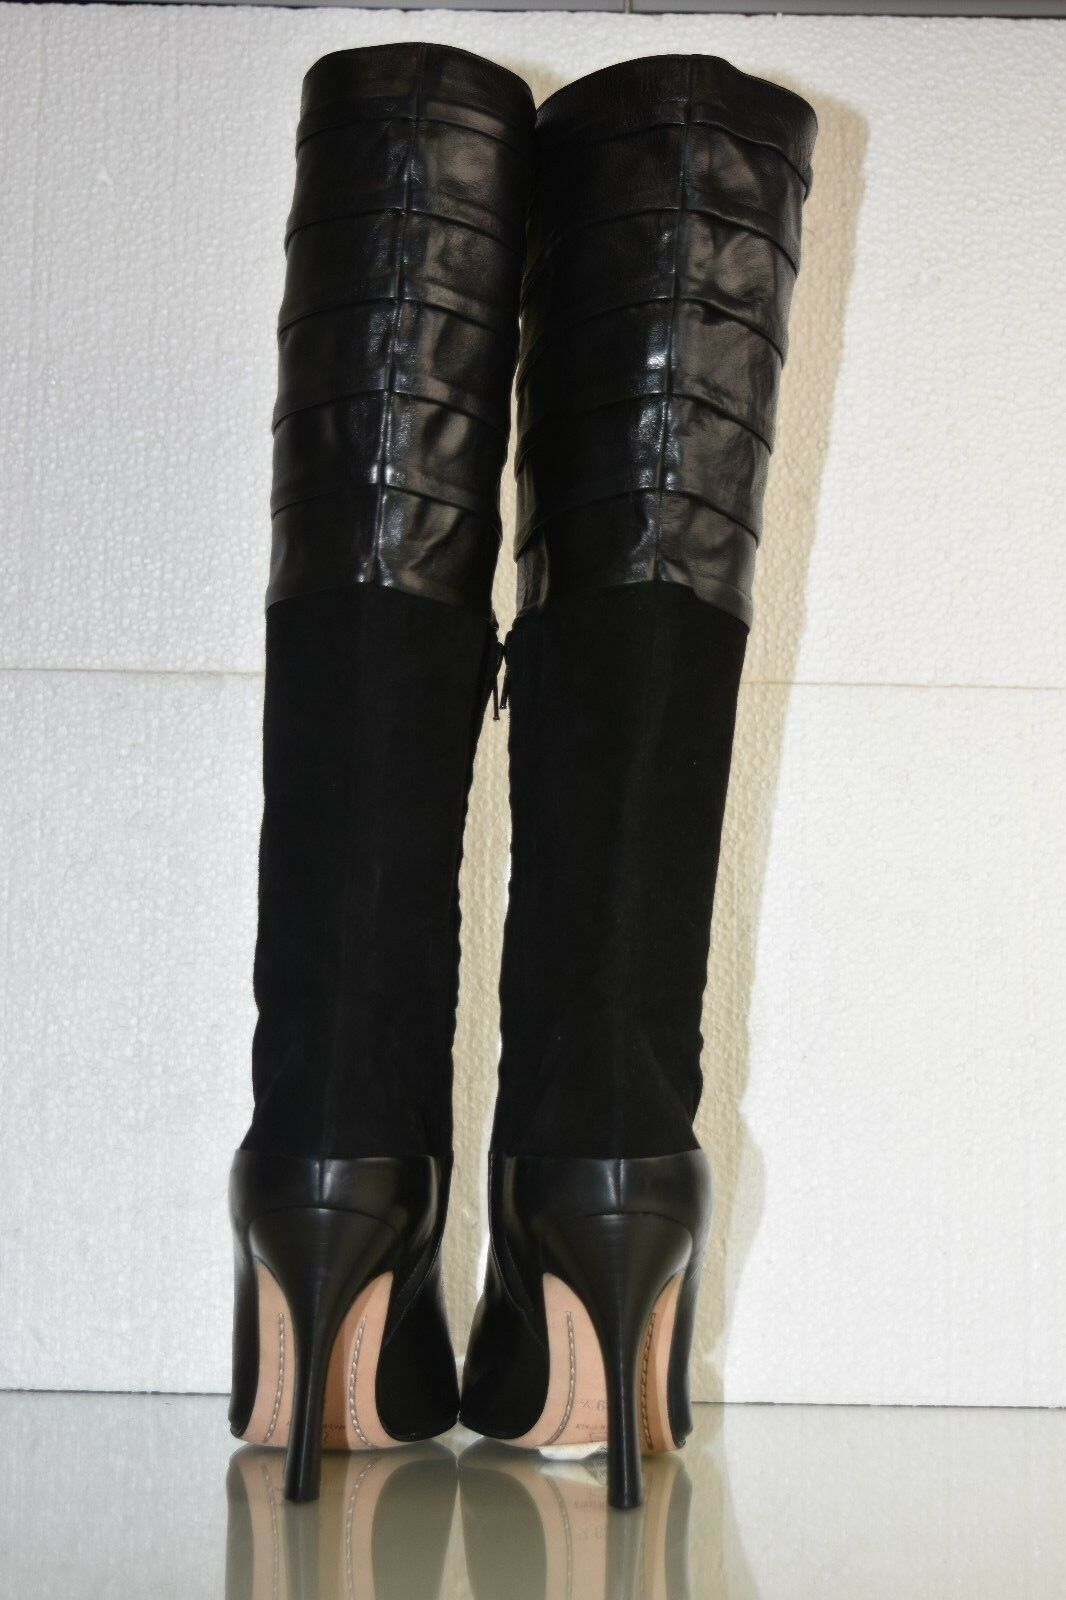 950 New RICKARD SHAH Knee High Boots Boots Boots Leather Suede Black Heels shoes 39.5 RARE d84d7b